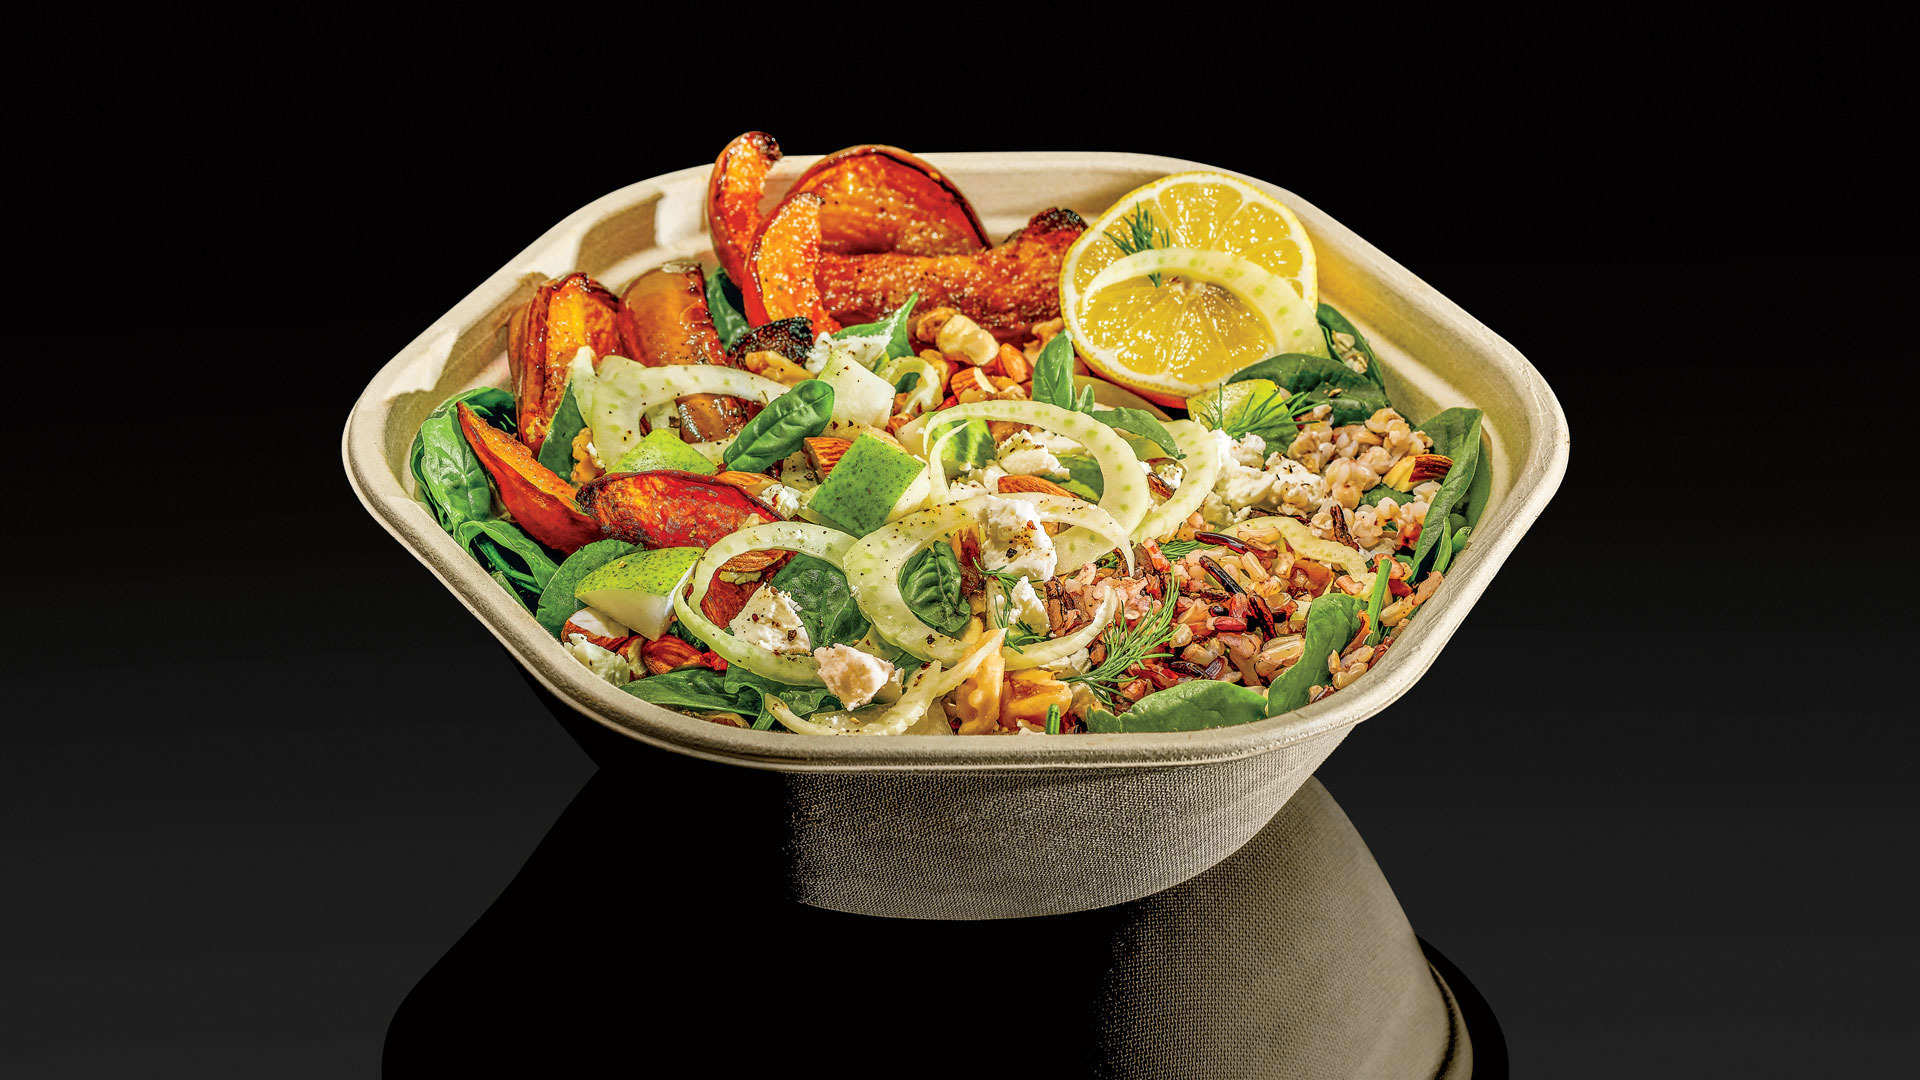 The Koginut Squash bowl from Sweetgreen. [Photo: Jamie Chung; Food stylist: Ali Nardi at Apostrophe]